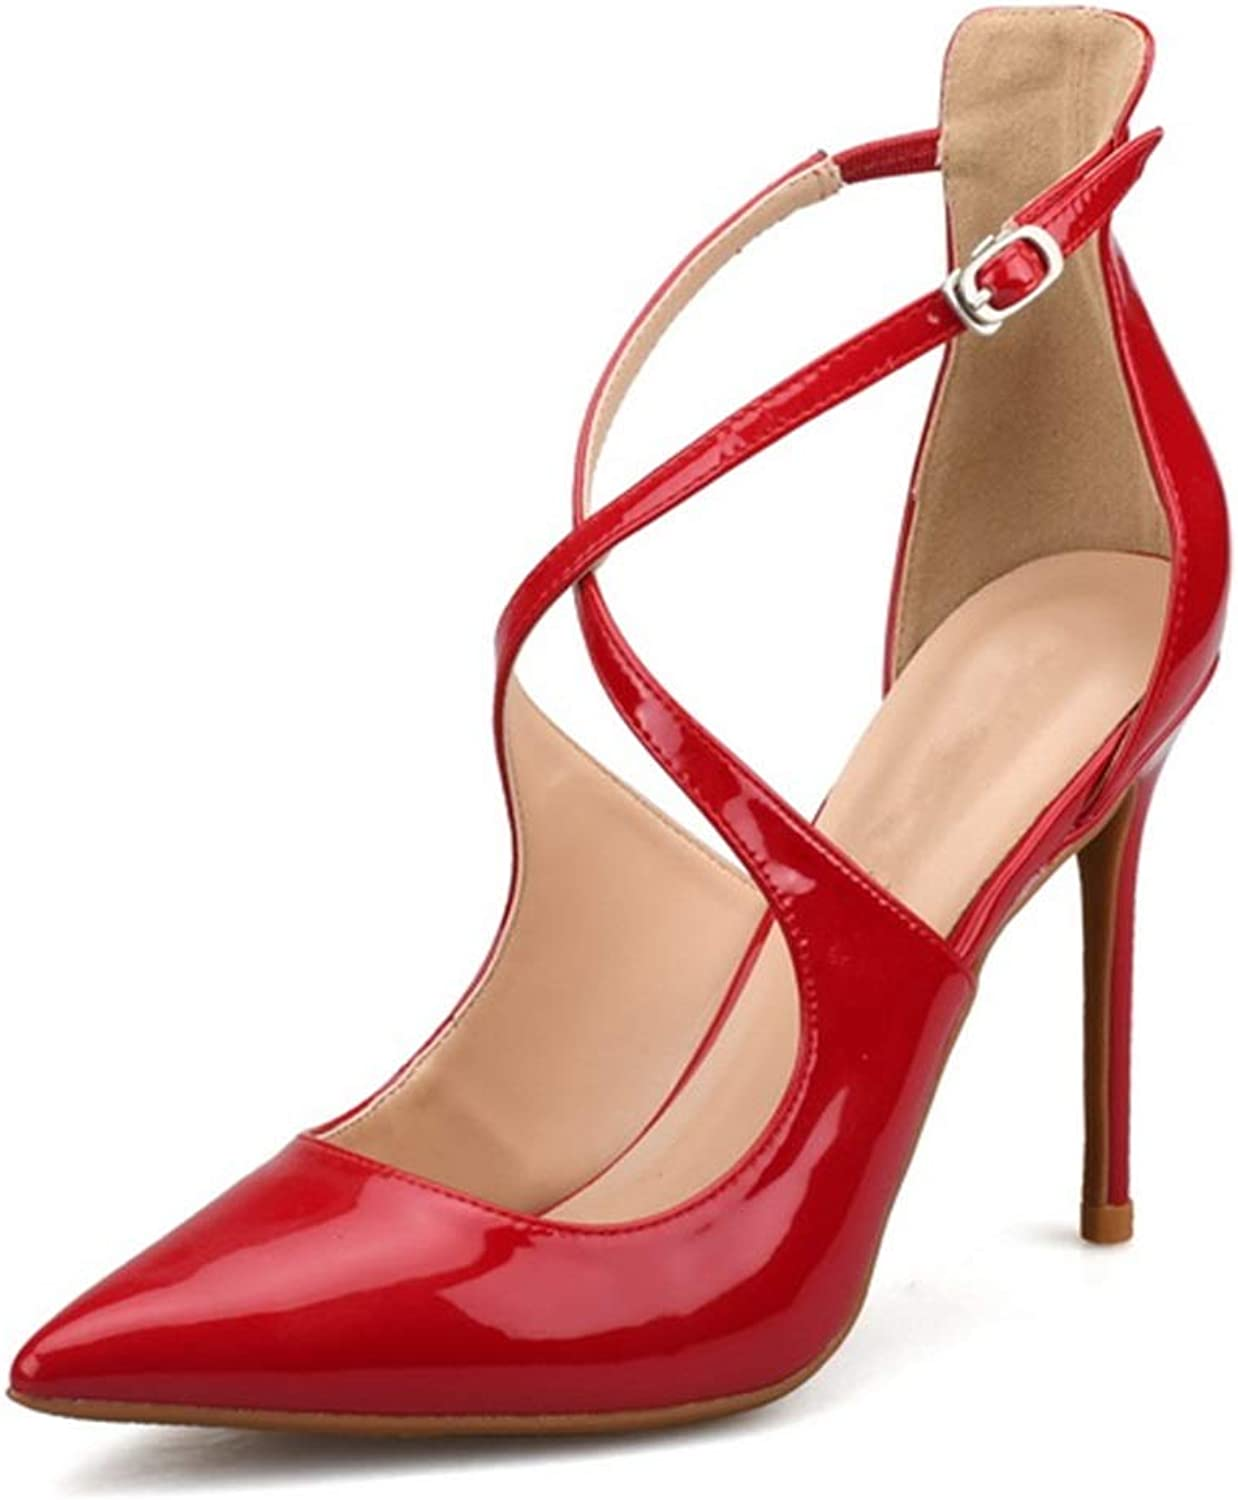 Lindarry Ankle Strap Sandals for Women Stiletto High Heeled Pumps Pointed Crisscross Strappy Patent PU Sides Cut Fashion (color   Red, Size   6.5 M US)